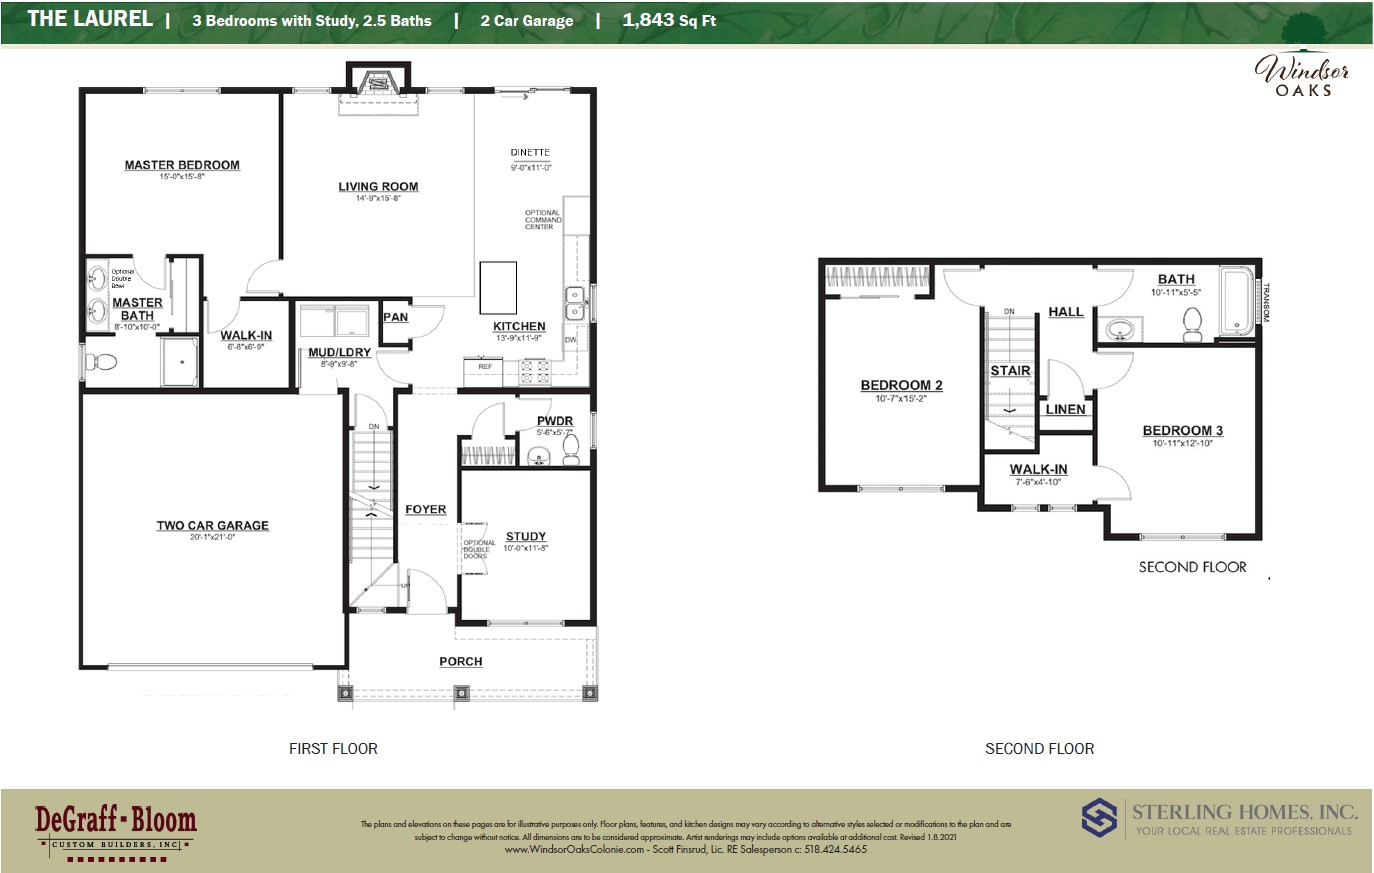 The Laurel Colonial Floor plan